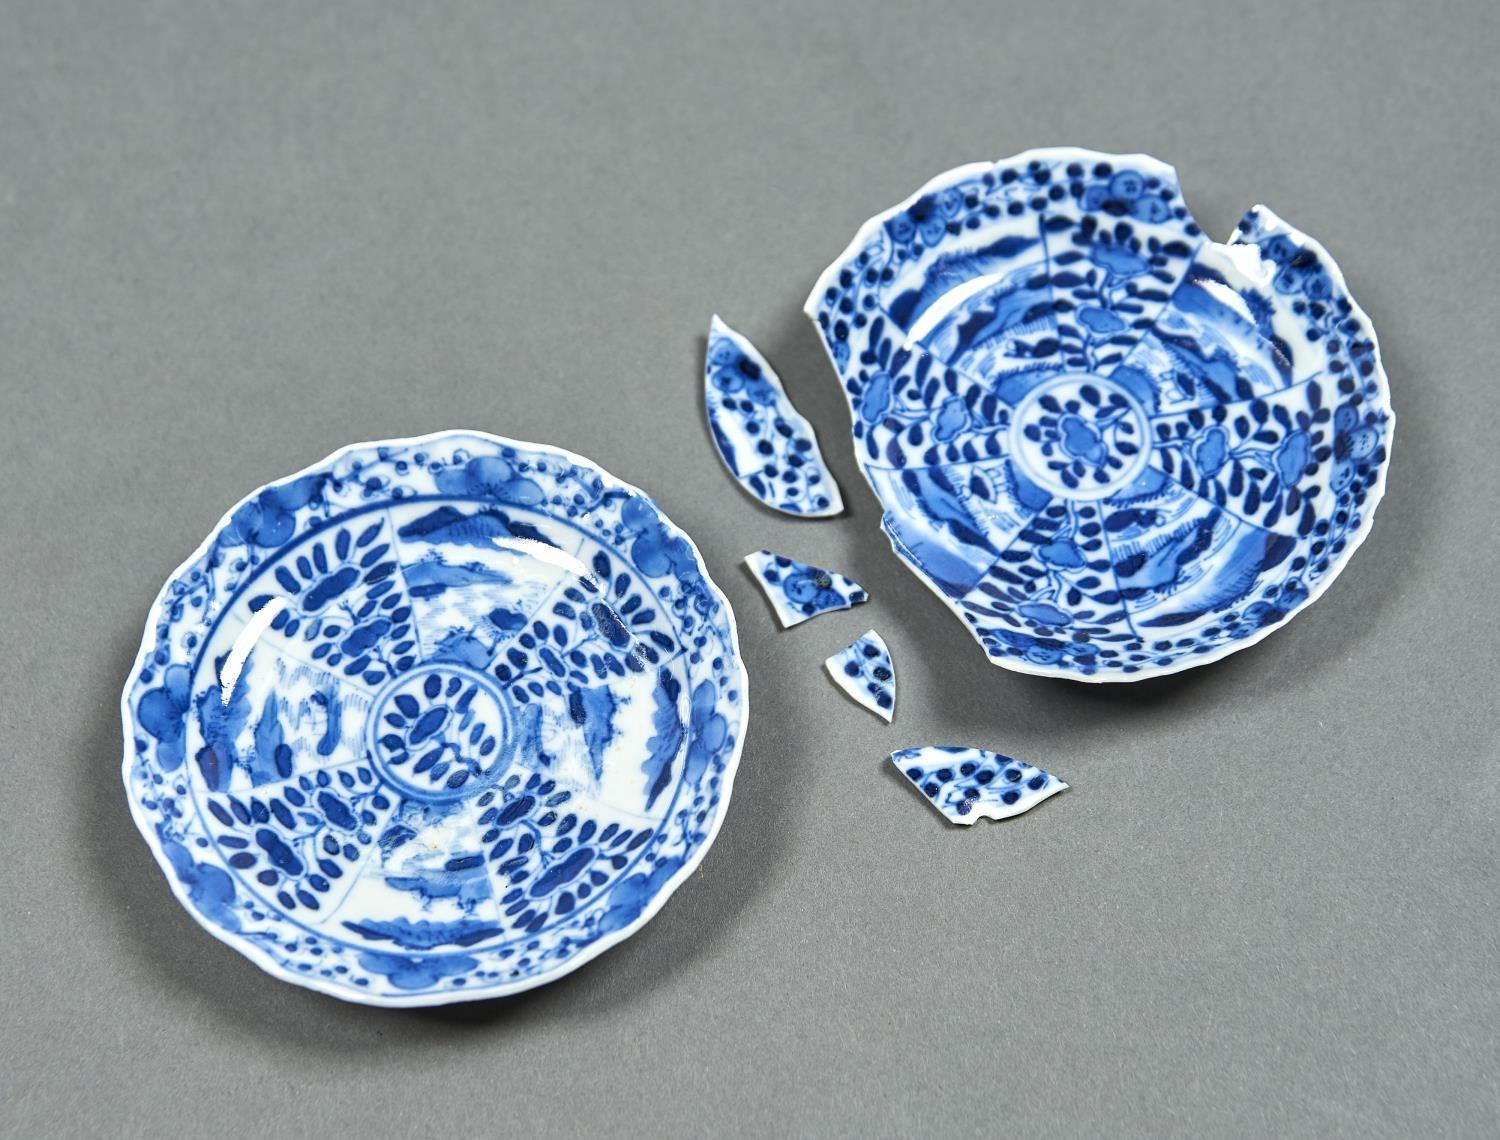 A PAIR OF CHINESE BLUE AND WHITE SAUCERS, 18TH C, PAINTED WITH LANDSCAPE AND FLORAL PANELS, THE